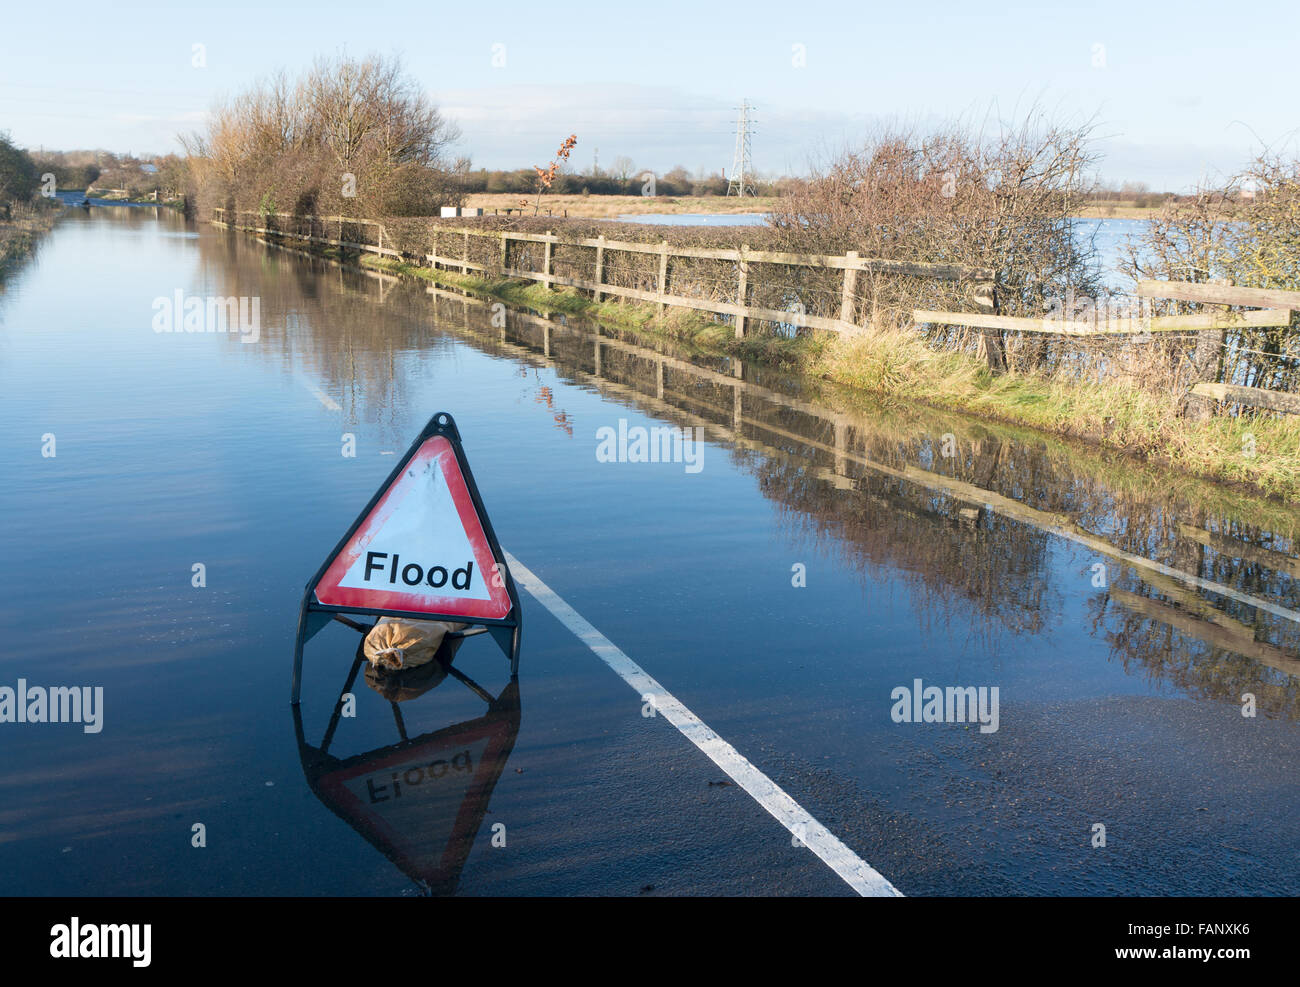 A closed flooded minor road with a triangular flood warning sign, north east England, UK - Stock Image